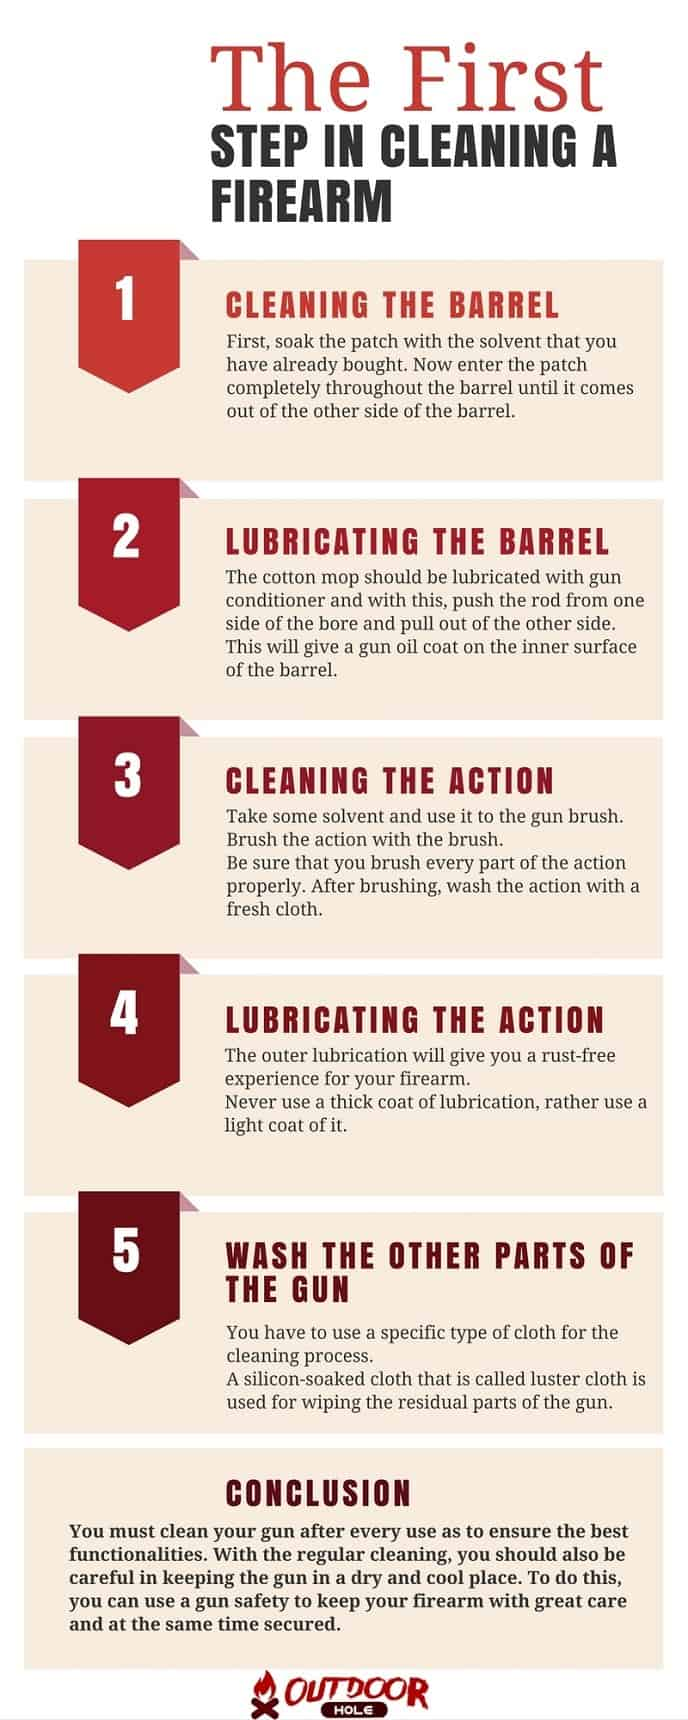 infographic-what-is-the-first-step-in-cleaning-a-firearm-step-by-step